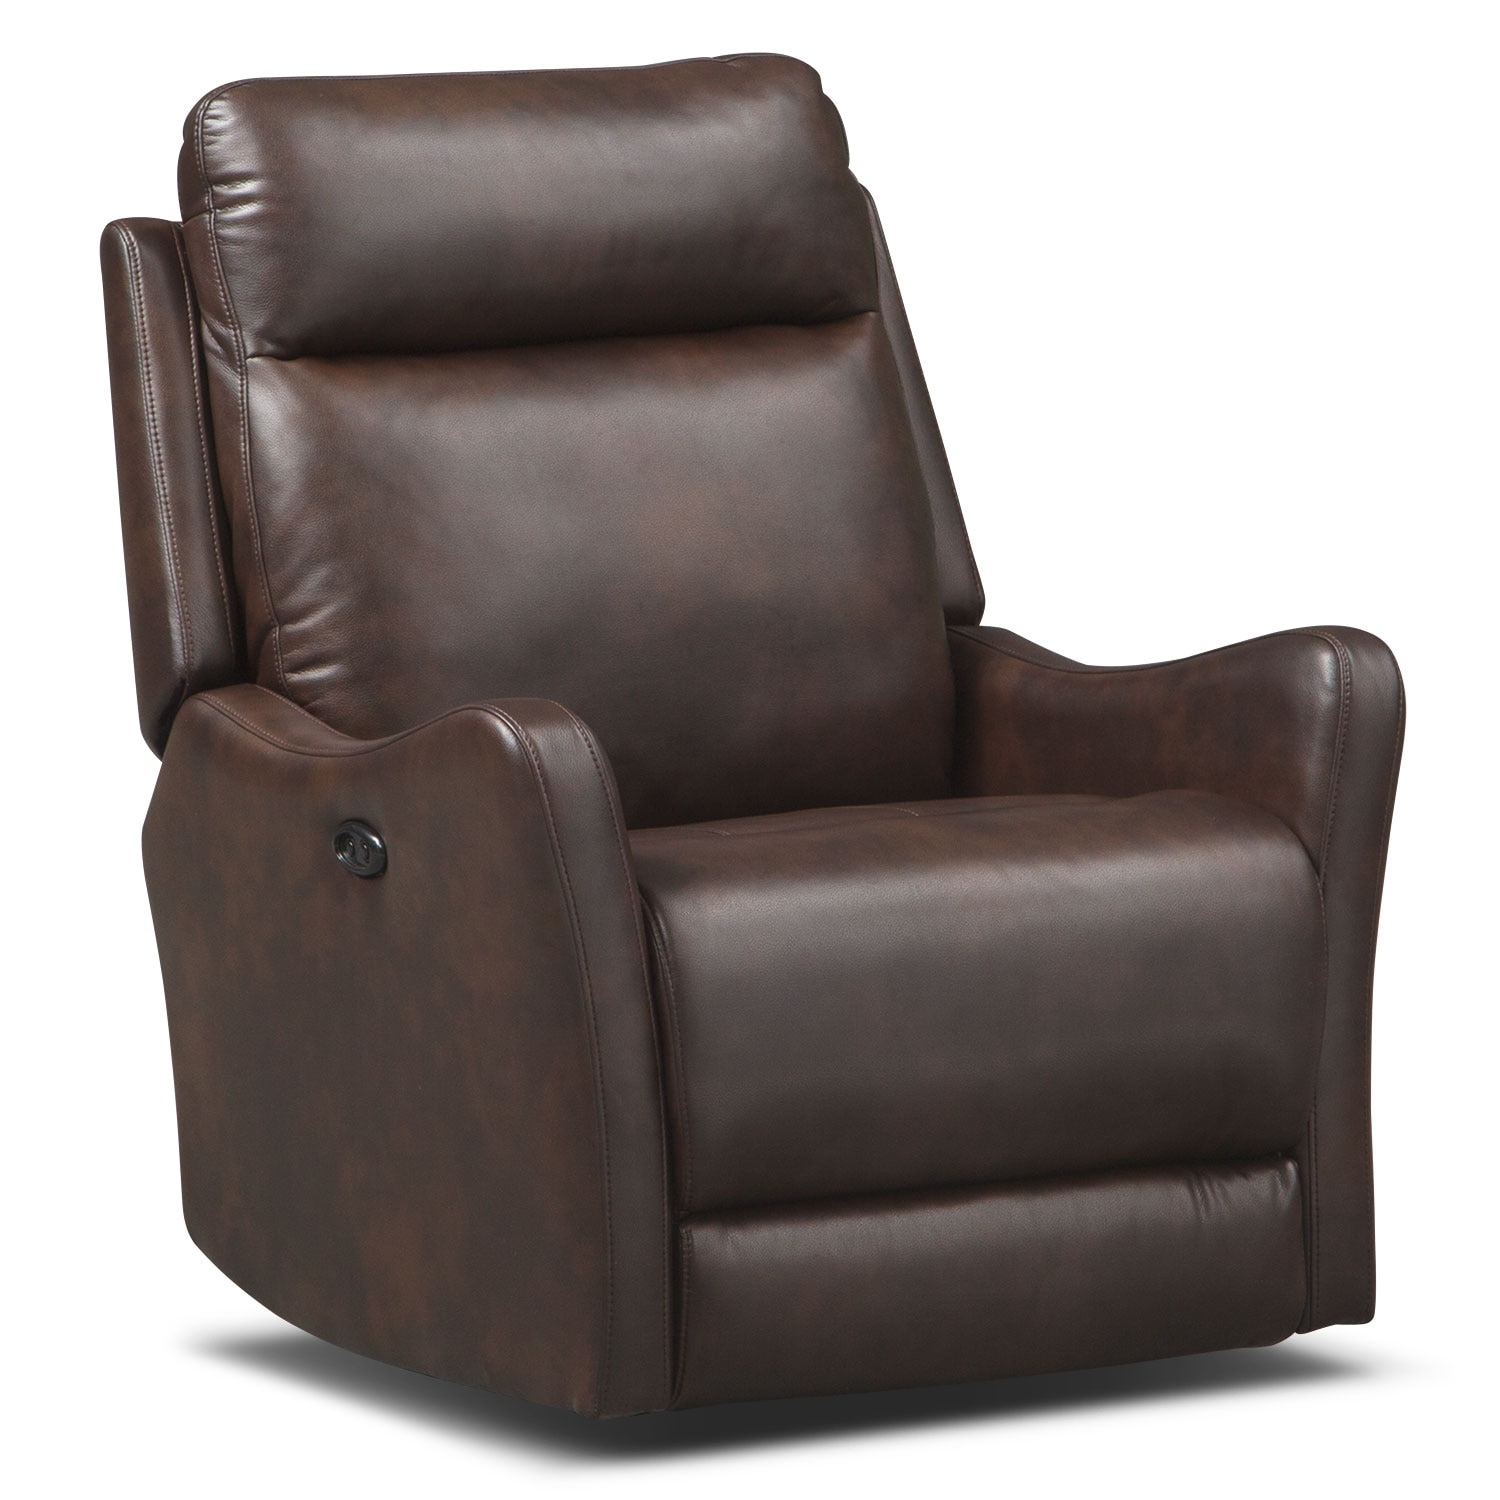 Enzo Power Recliner - Brown